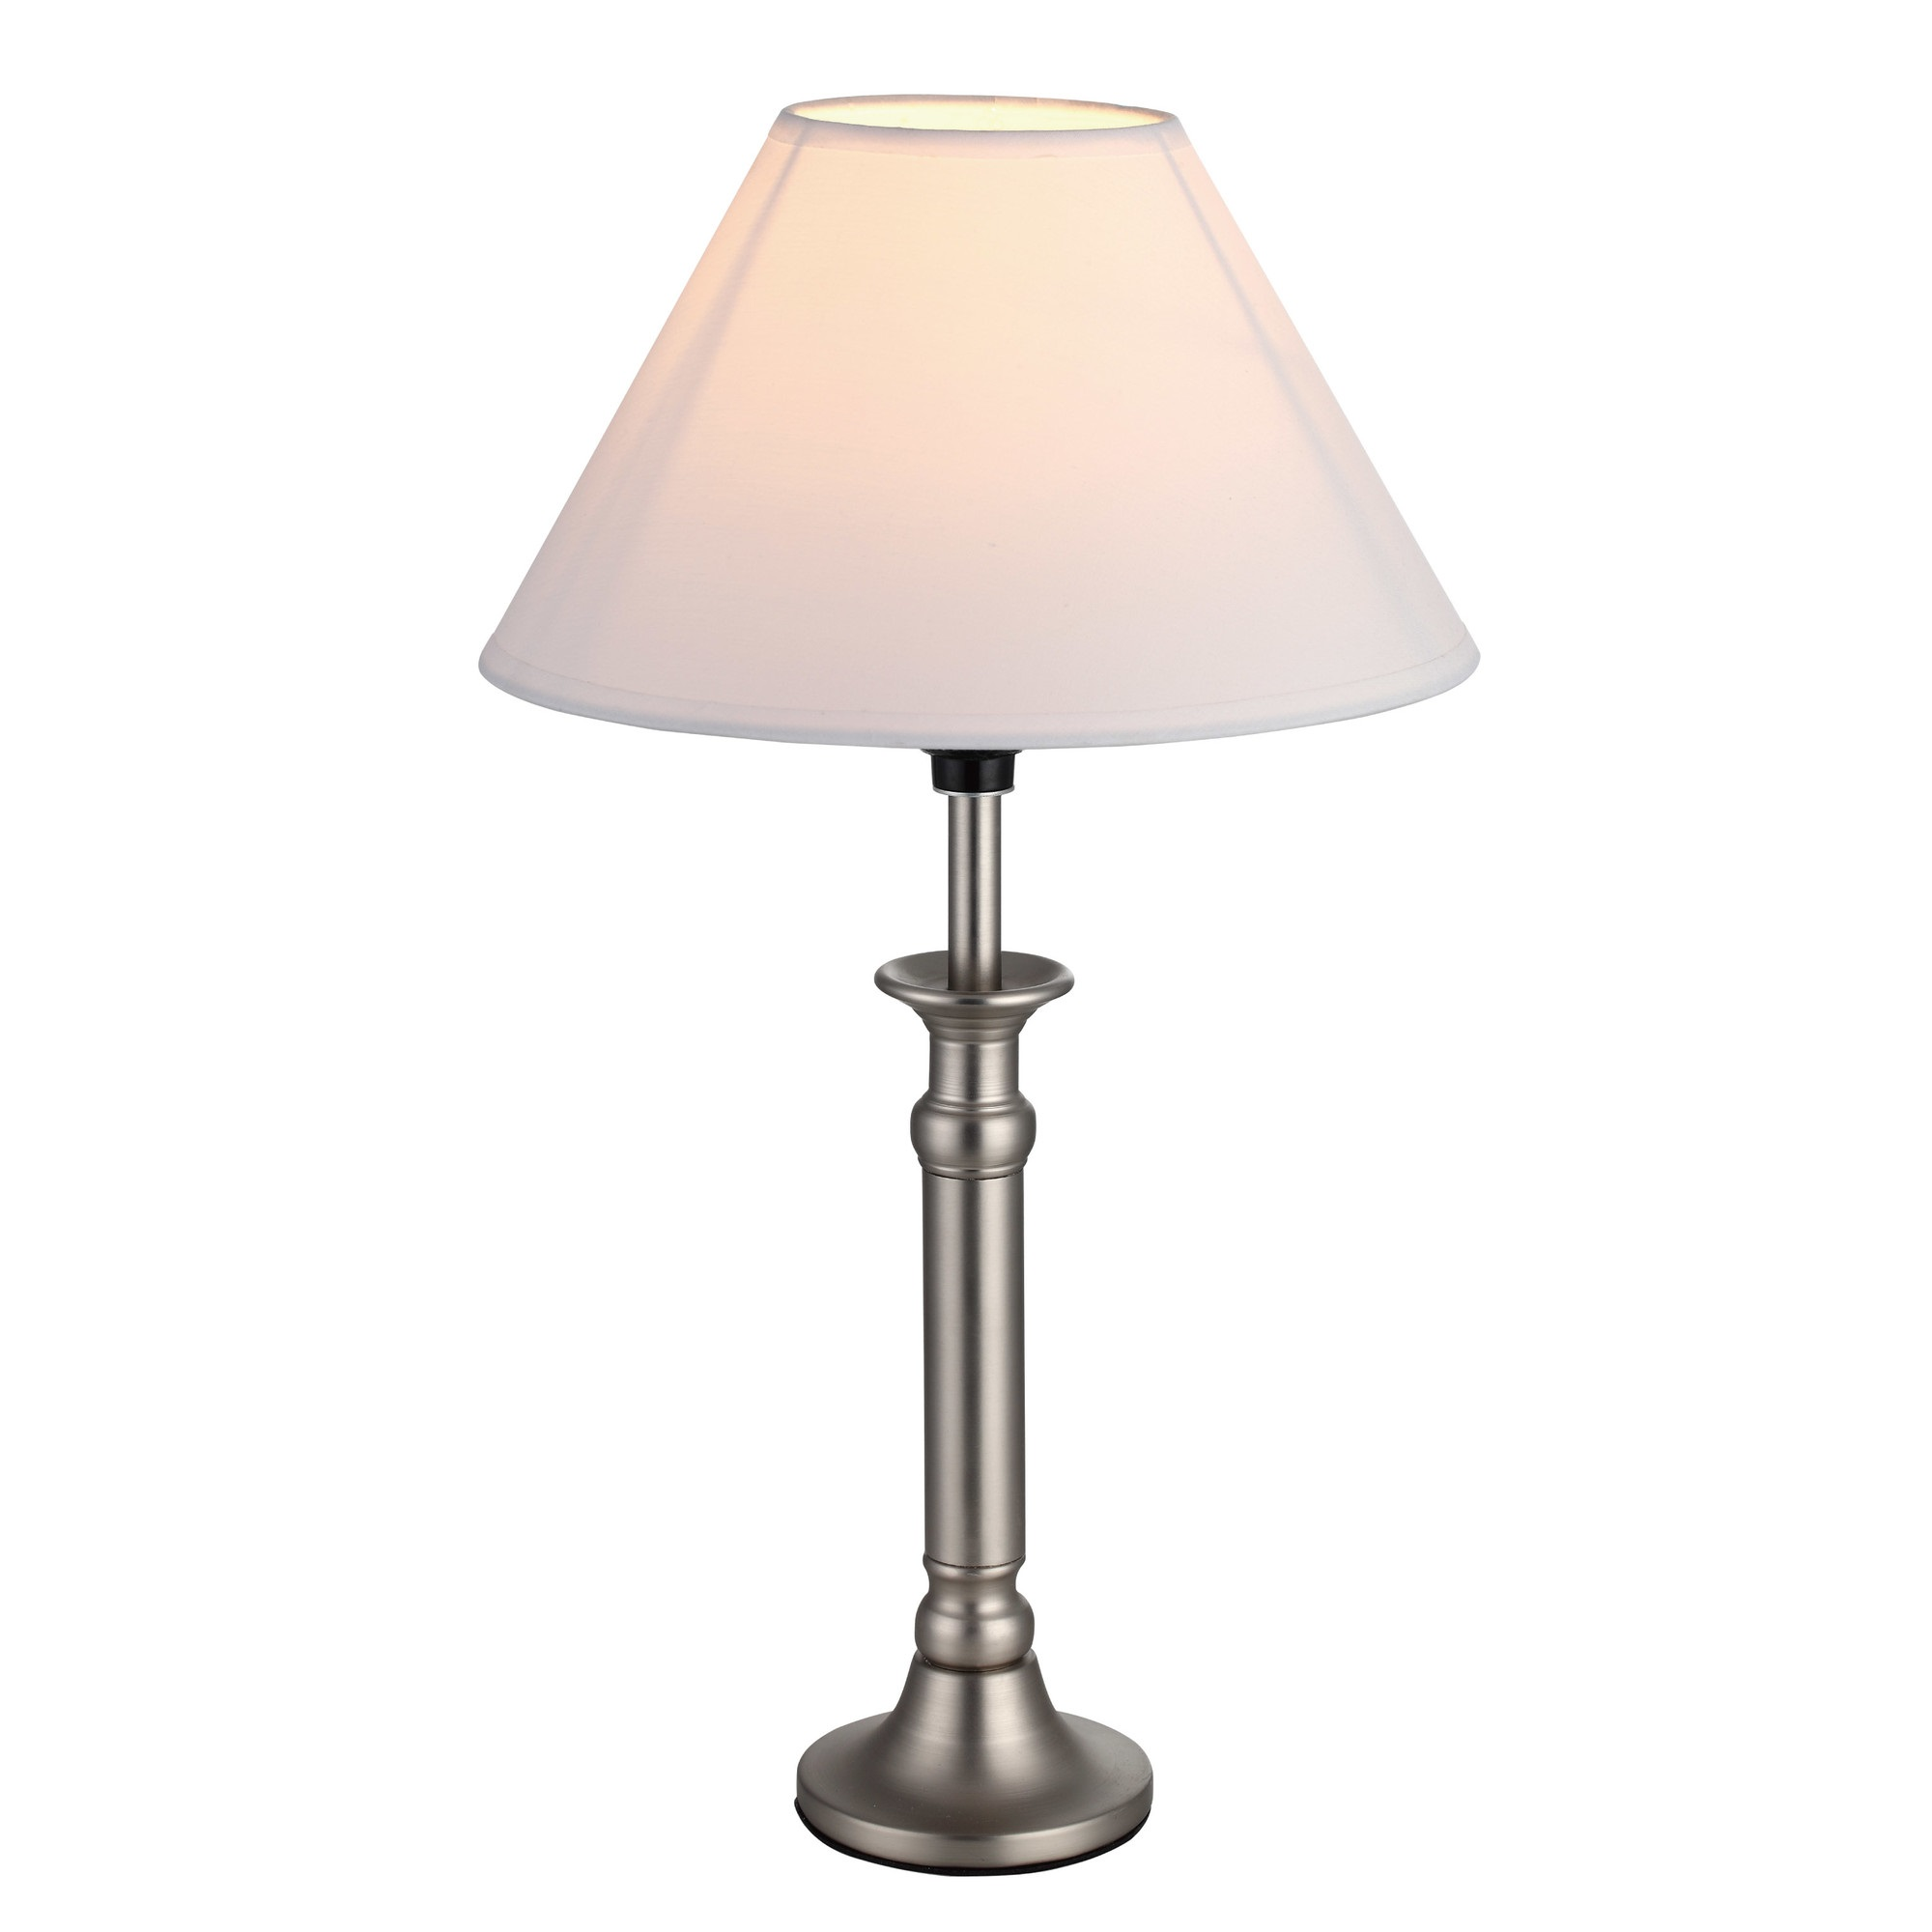 Andover mills table lamp with shade kvn225ddp l brilliant source lighting - Chandelier desk lamp ...